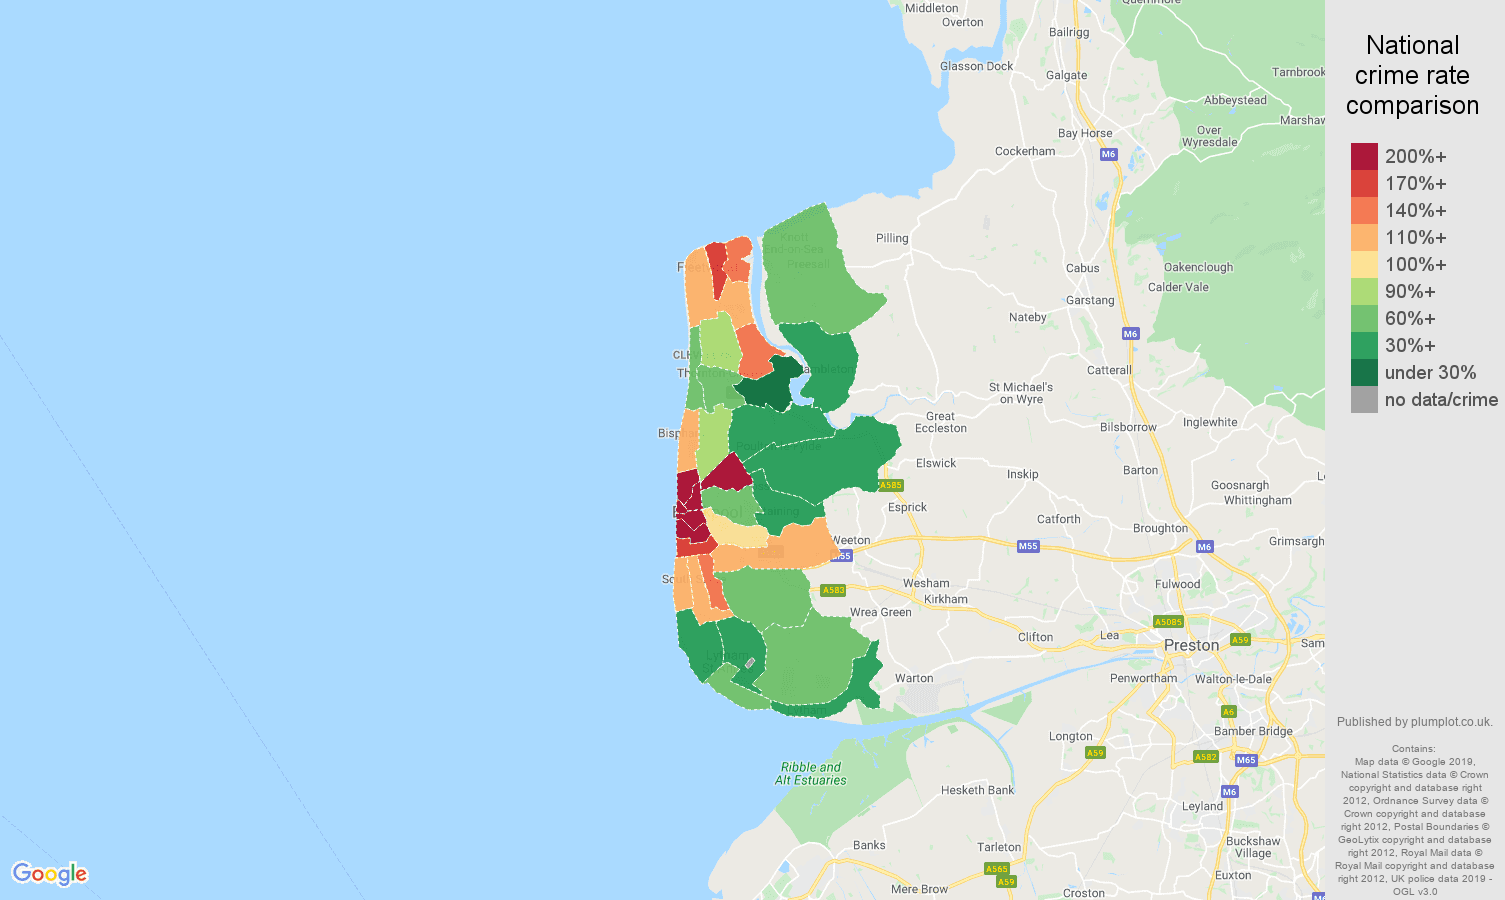 Blackpool other crime statistics in maps and graphs